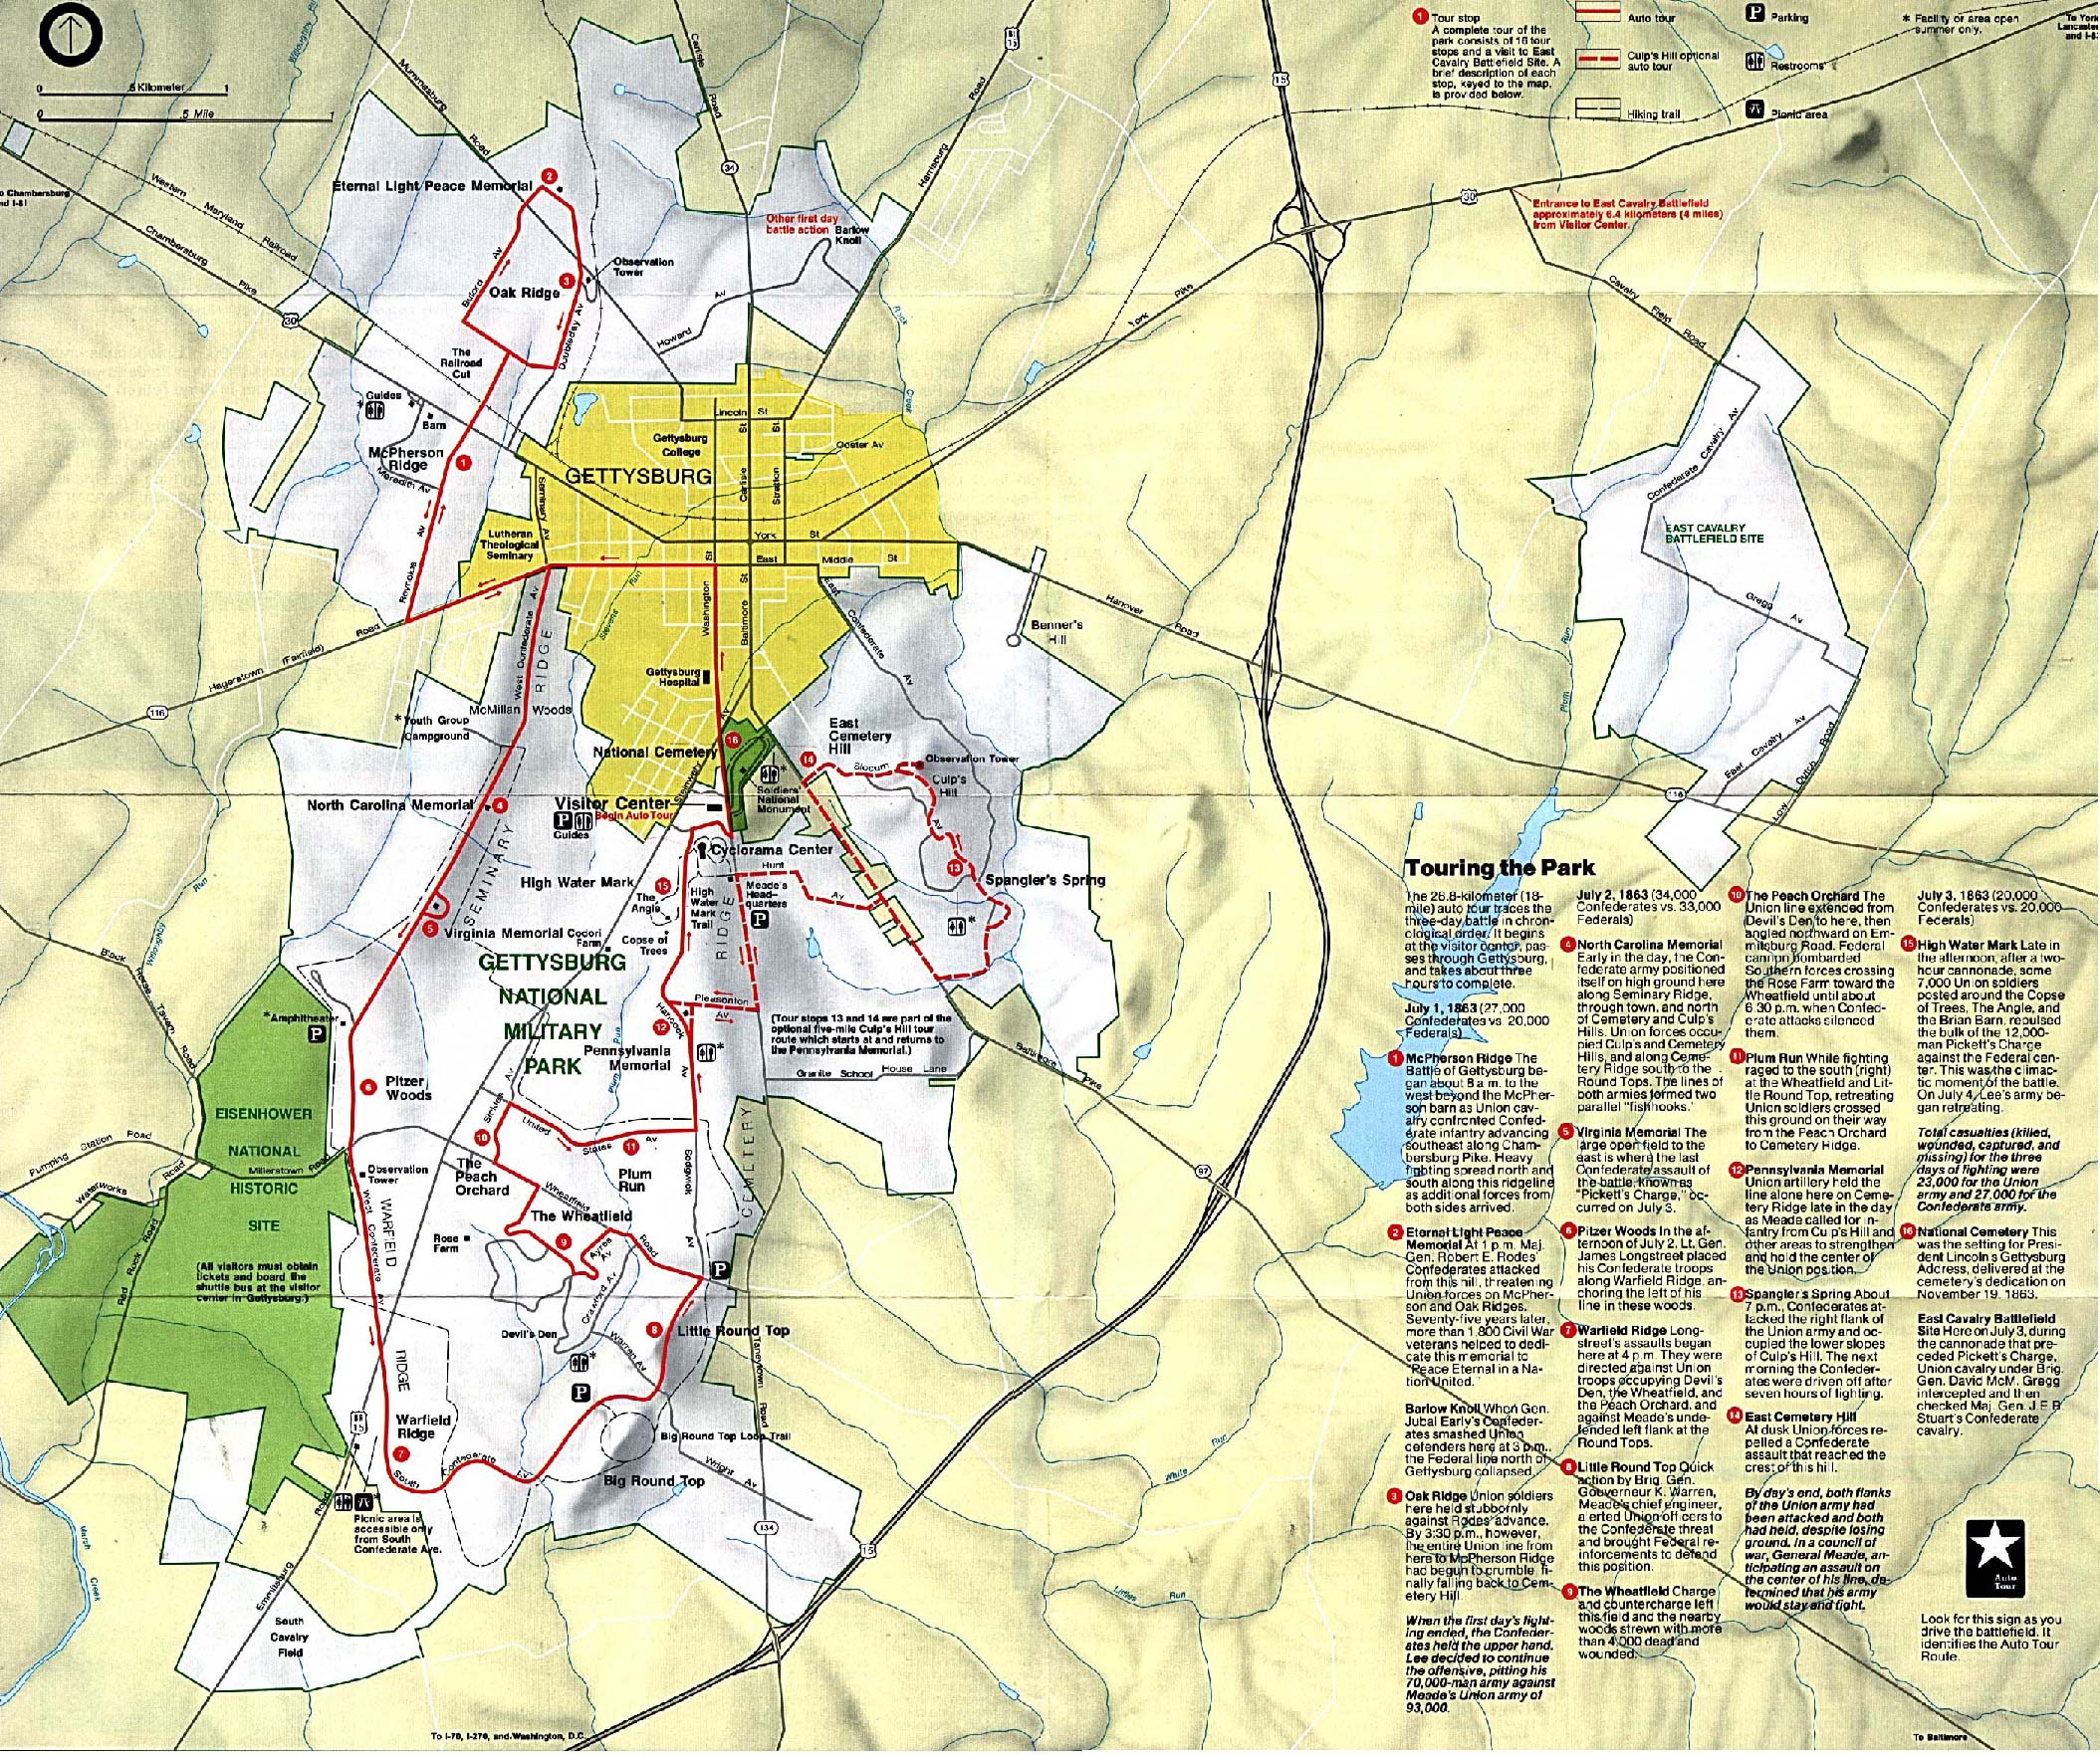 Gettysburg Us Map.Maps Of Gettysburg National Military Park Shaded Relief Map